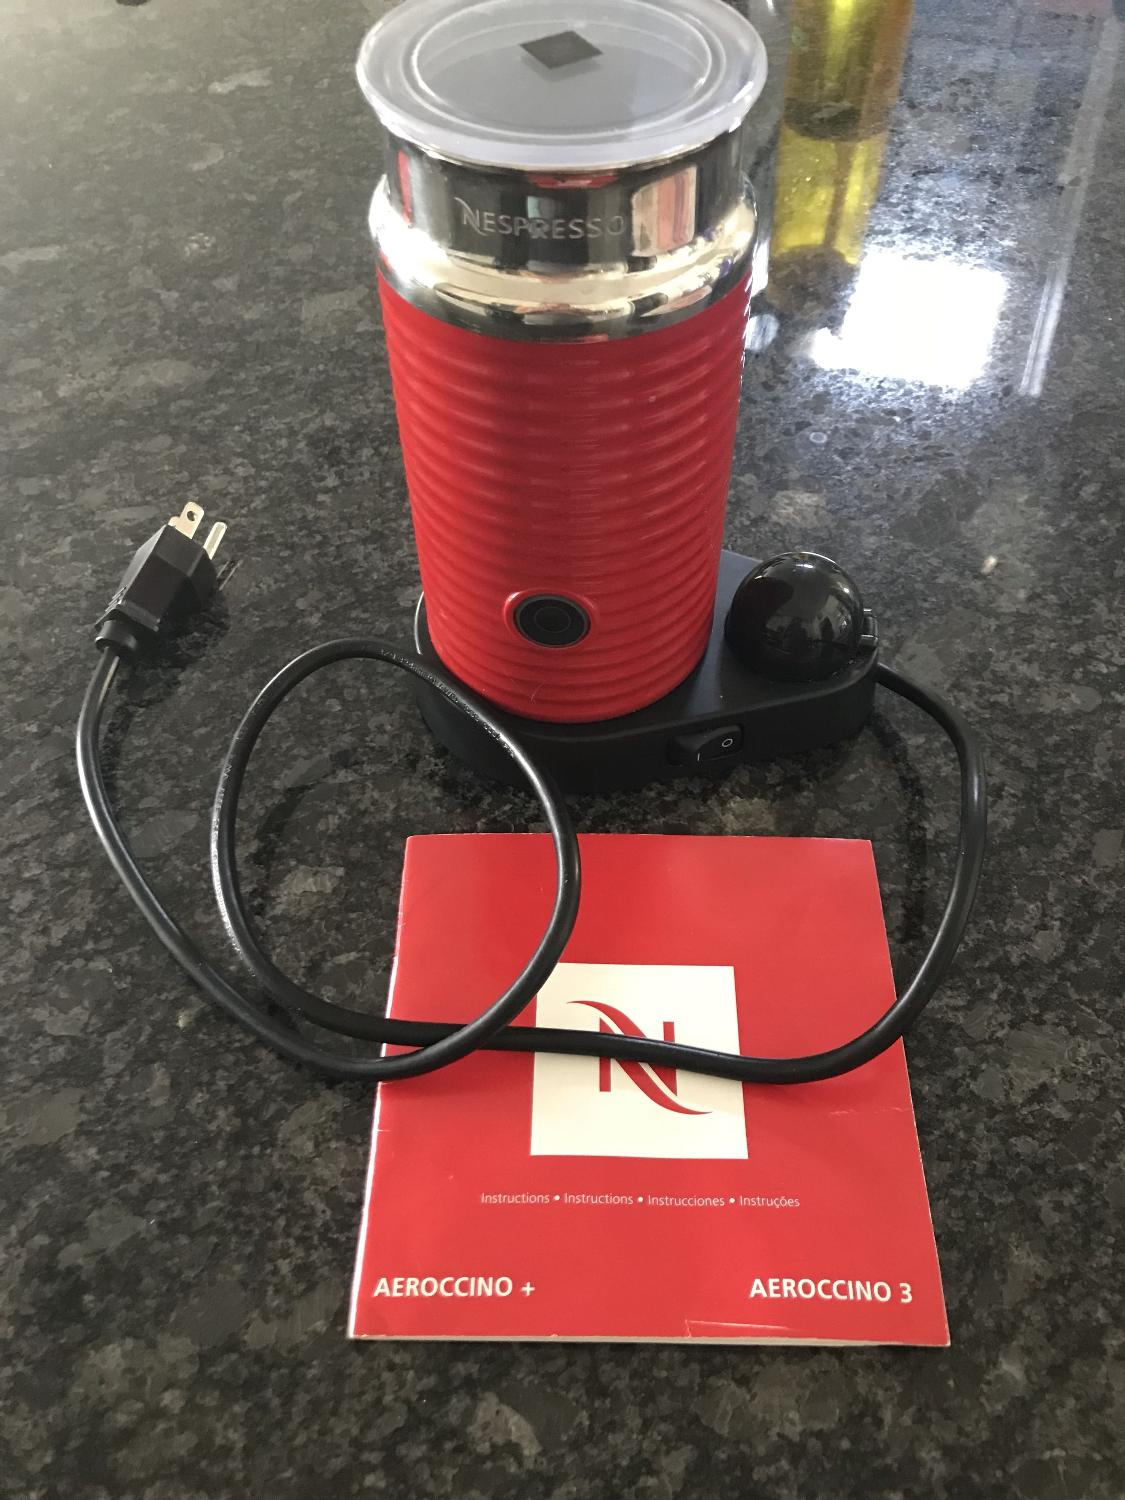 Find More Nespresso Aeroccino 3 For Sale At Up To 90 Off